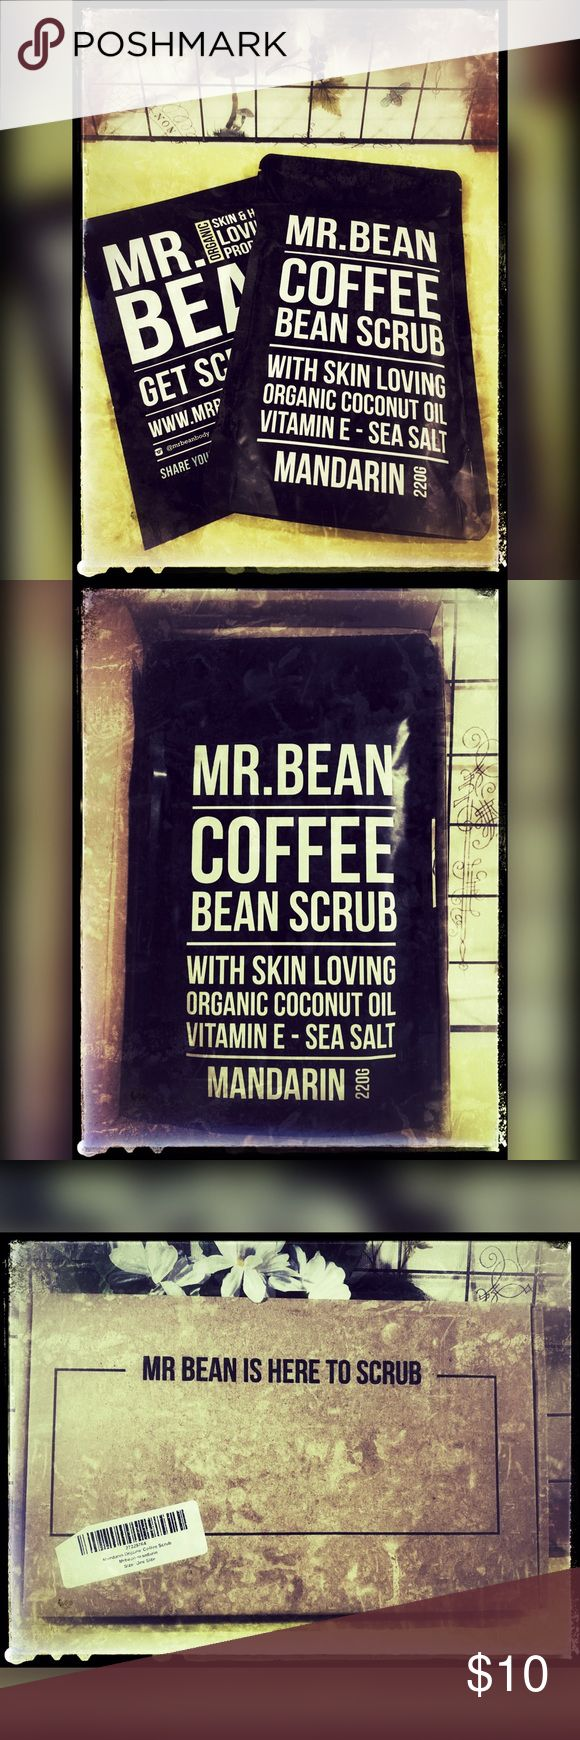 "Mrbean Organic Coffee Scrub-Mandarin Fab organic coffee scrub with Robusta coffee beans, organic cold pressed coconut oil, Himalayan pink rock salt, Demerera sugar, organic cacao and vit. E oil. ""I'm tough enough to improve your skins imperfections, yet leaving you feeling softer and smoother than ever."" If you haven't tried these yet, here is your chance at half price! Mr.Bean Body Care Makeup"